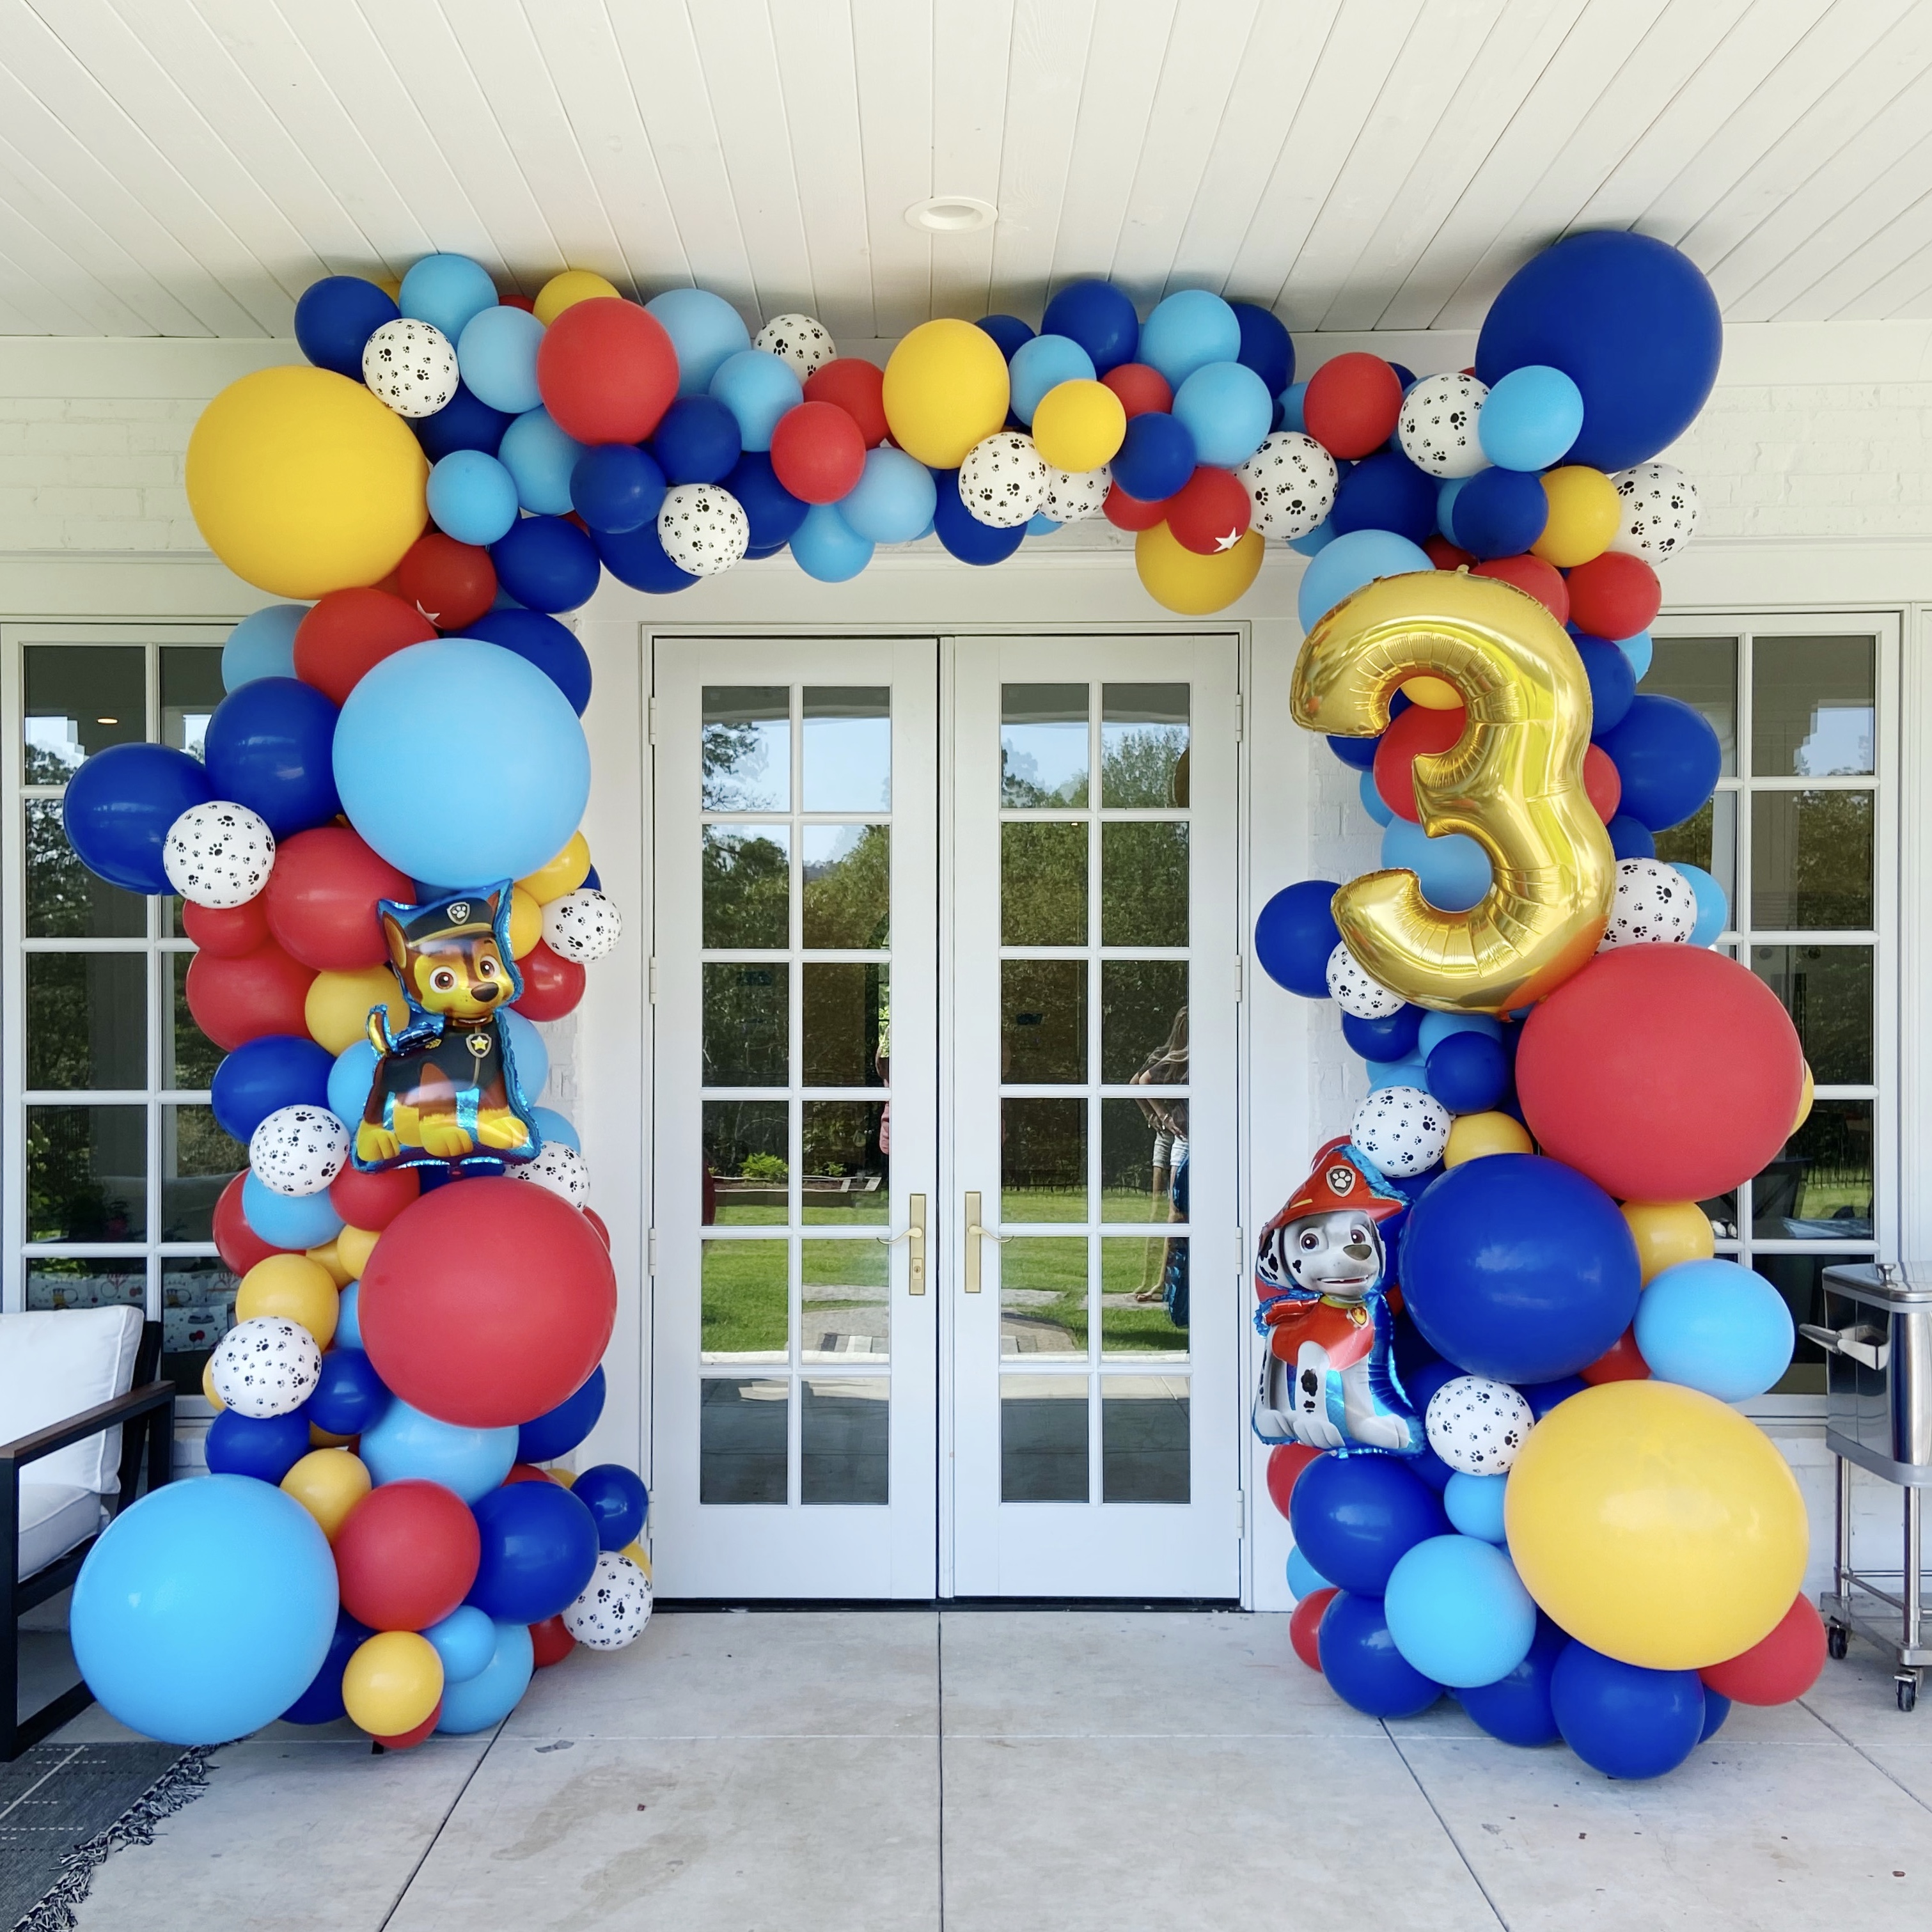 Entryway full balloon arch wrap in Paw Patrol theme by Just Peachy in Little Rock, Arkansas.